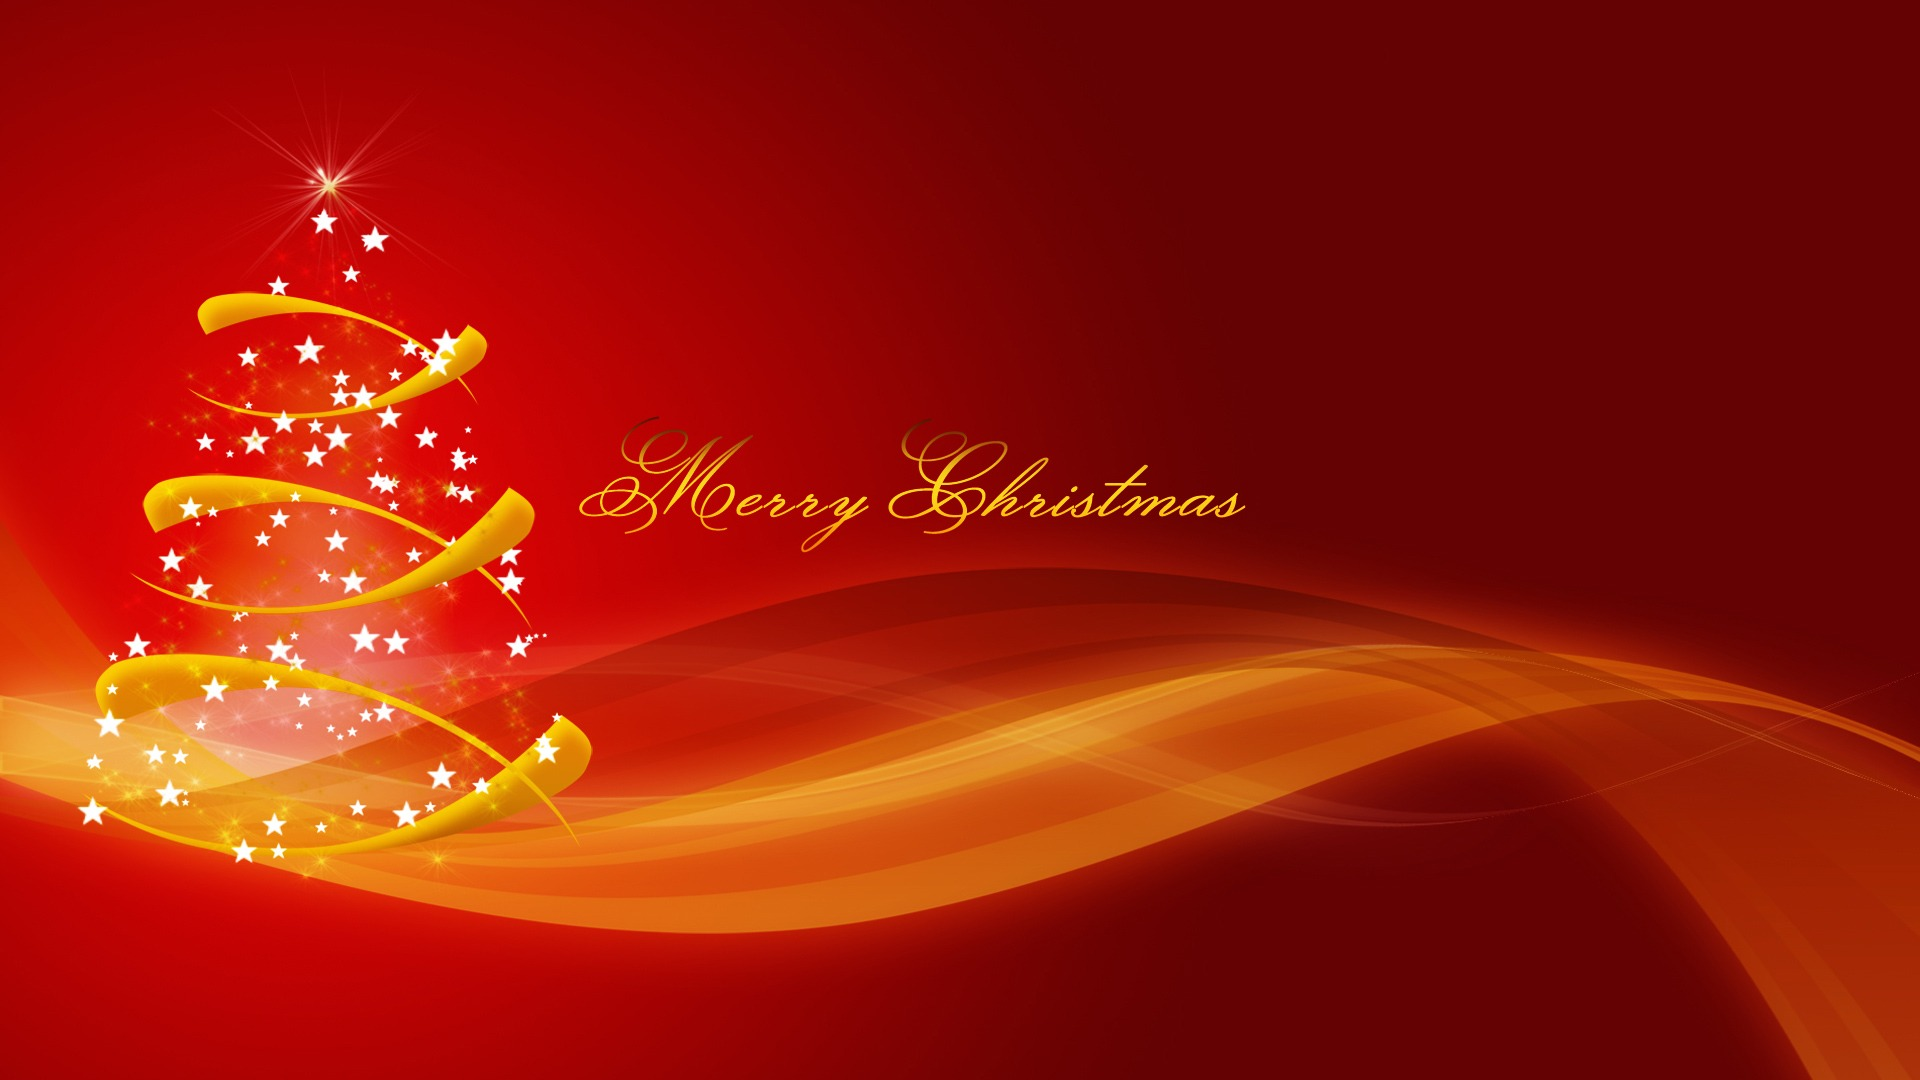 happy meery christmas golden tree sparkling stars hd wallpaper